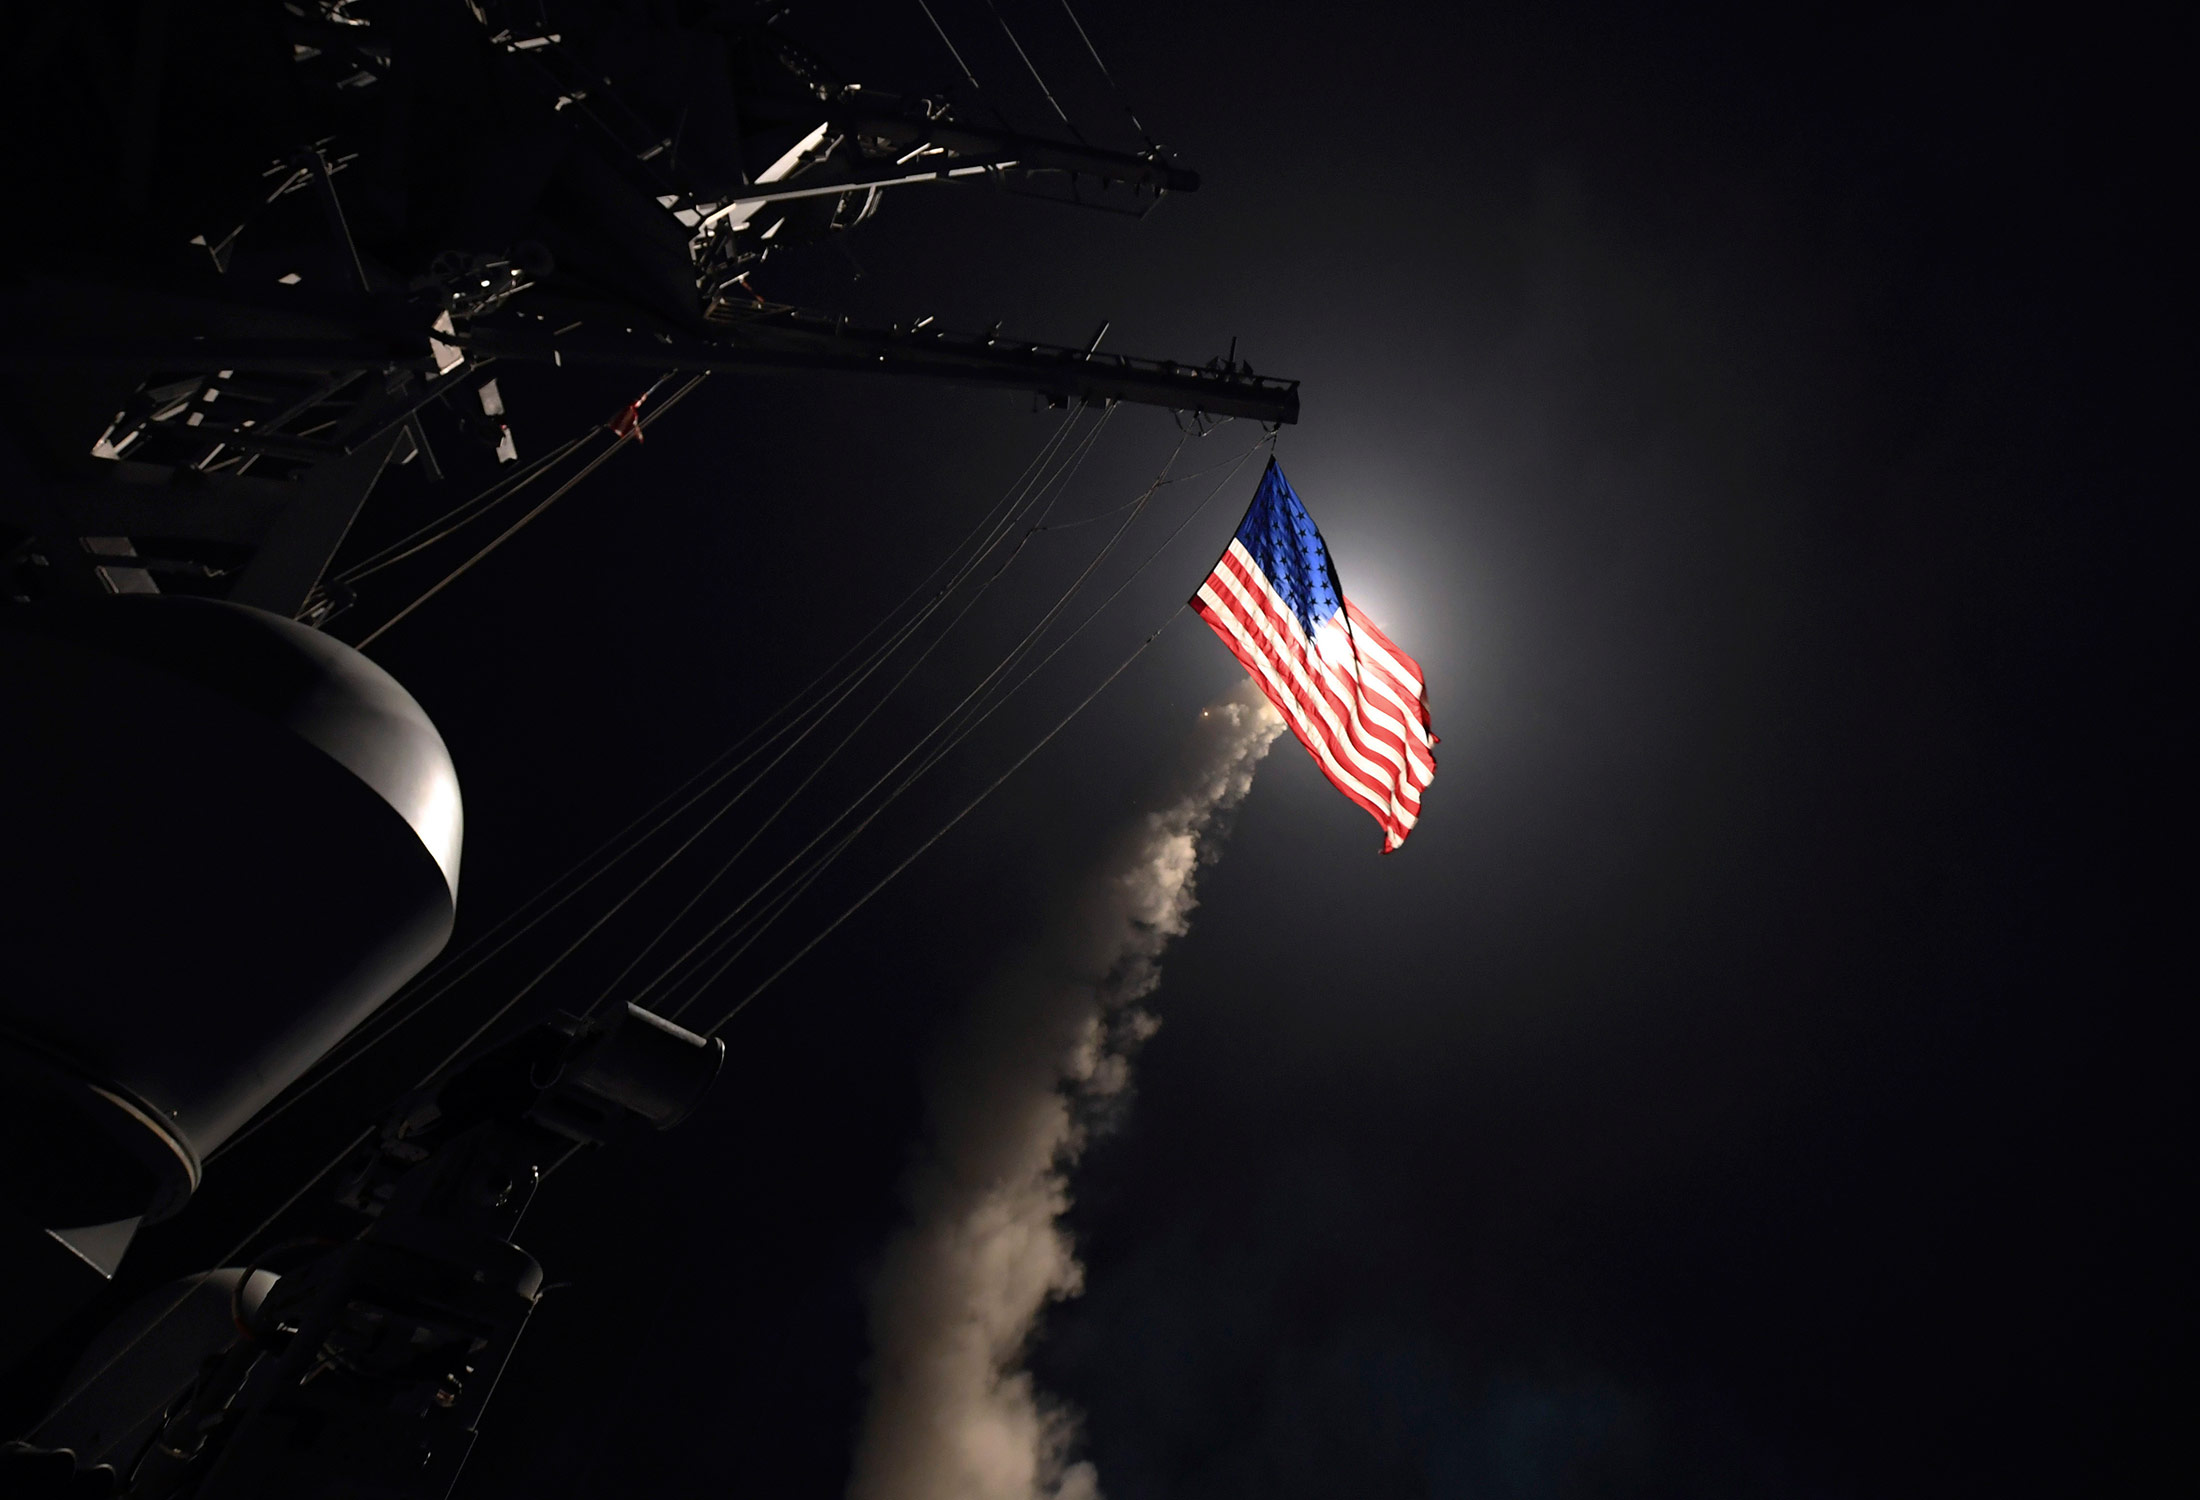 Why Putin calls US Syria strike aggression?